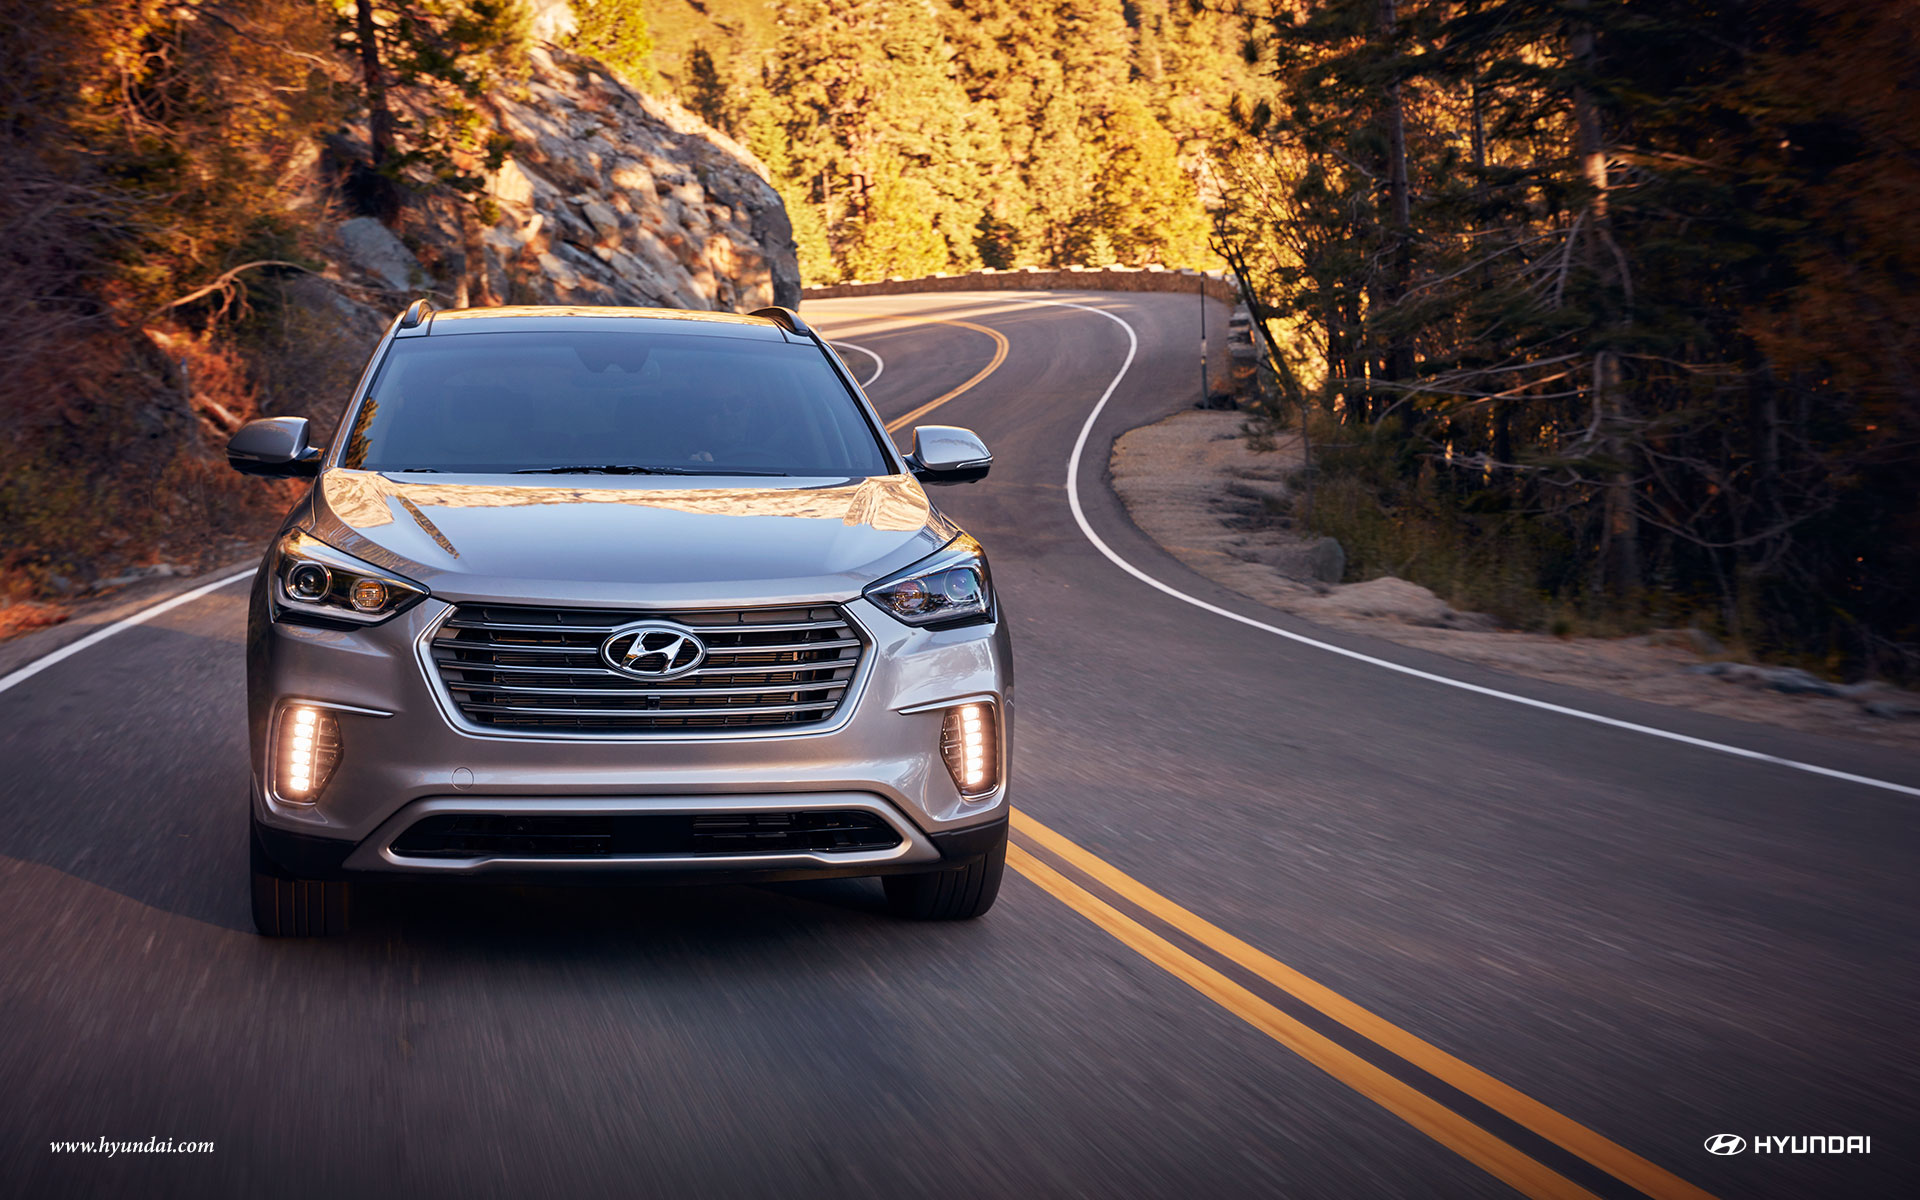 Westminster Area Hyundai Dealership - 2018 Hyundai Santa Fe